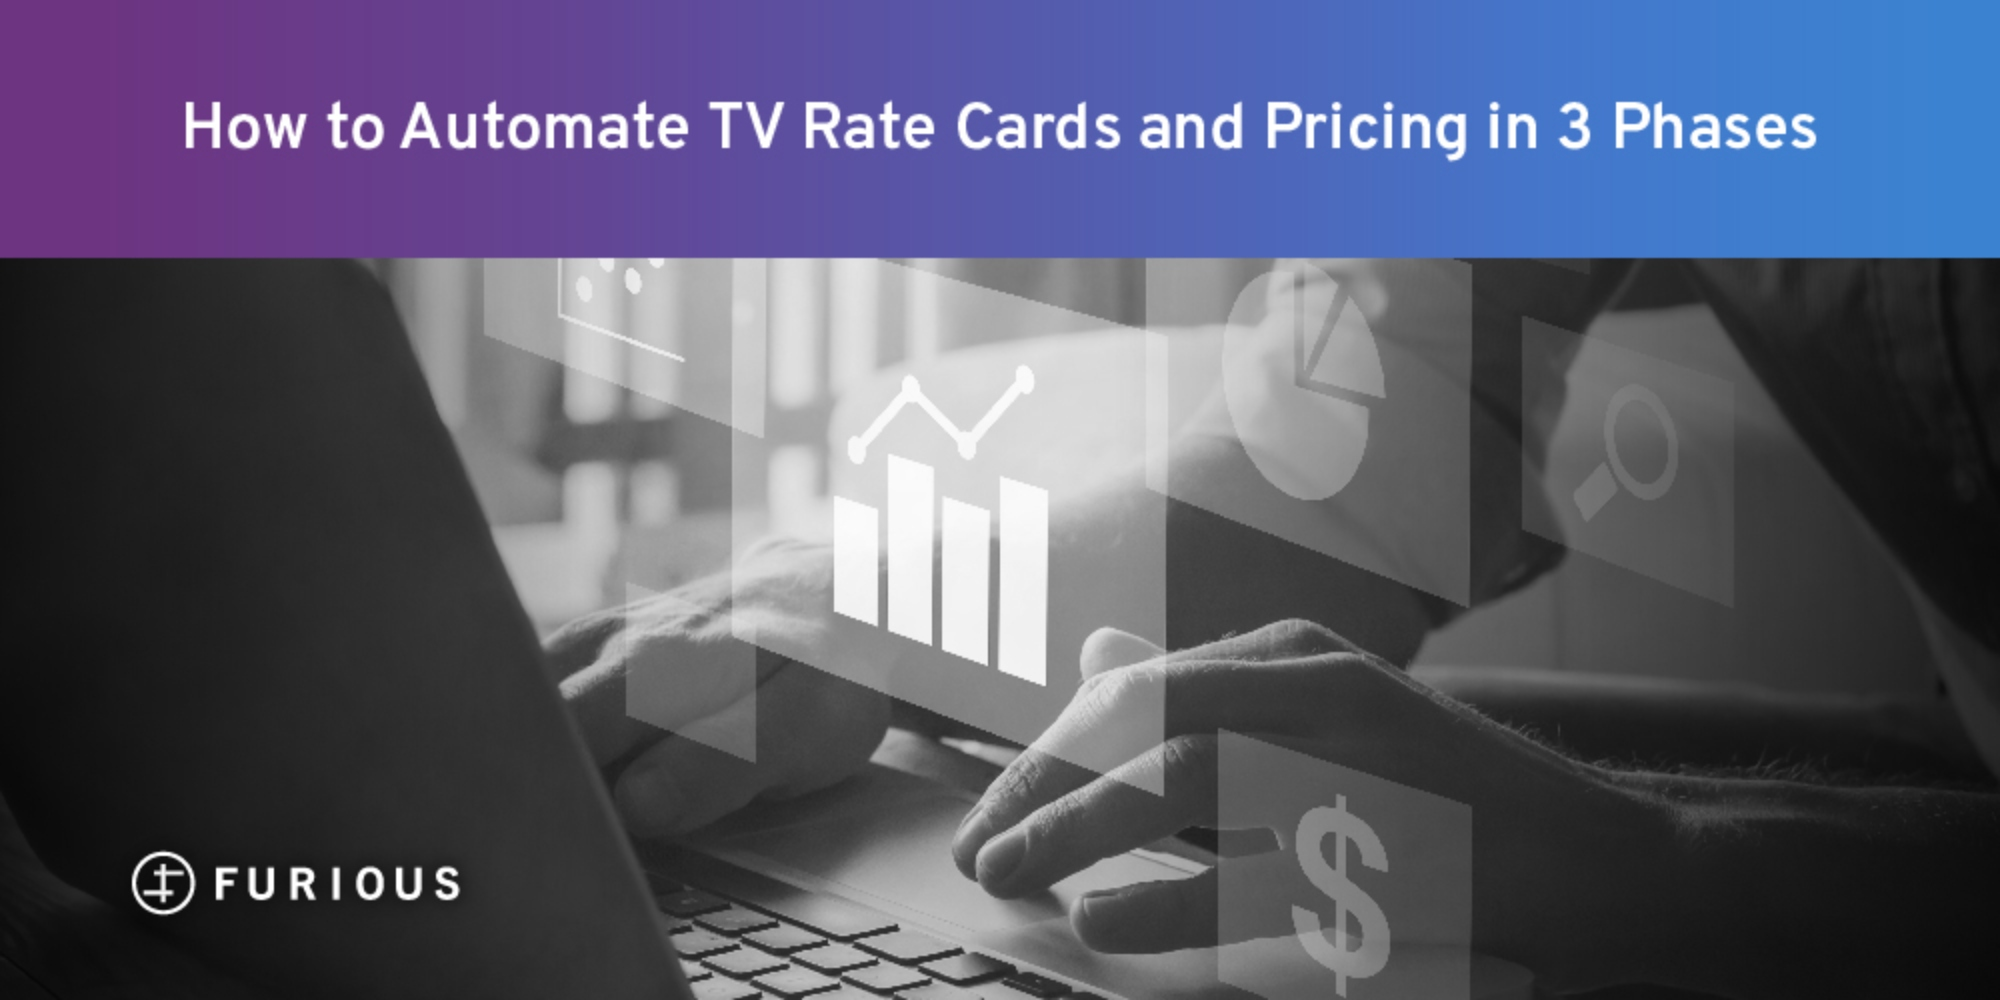 How to Automate TV Rate Cards and Pricing in 3 Phases